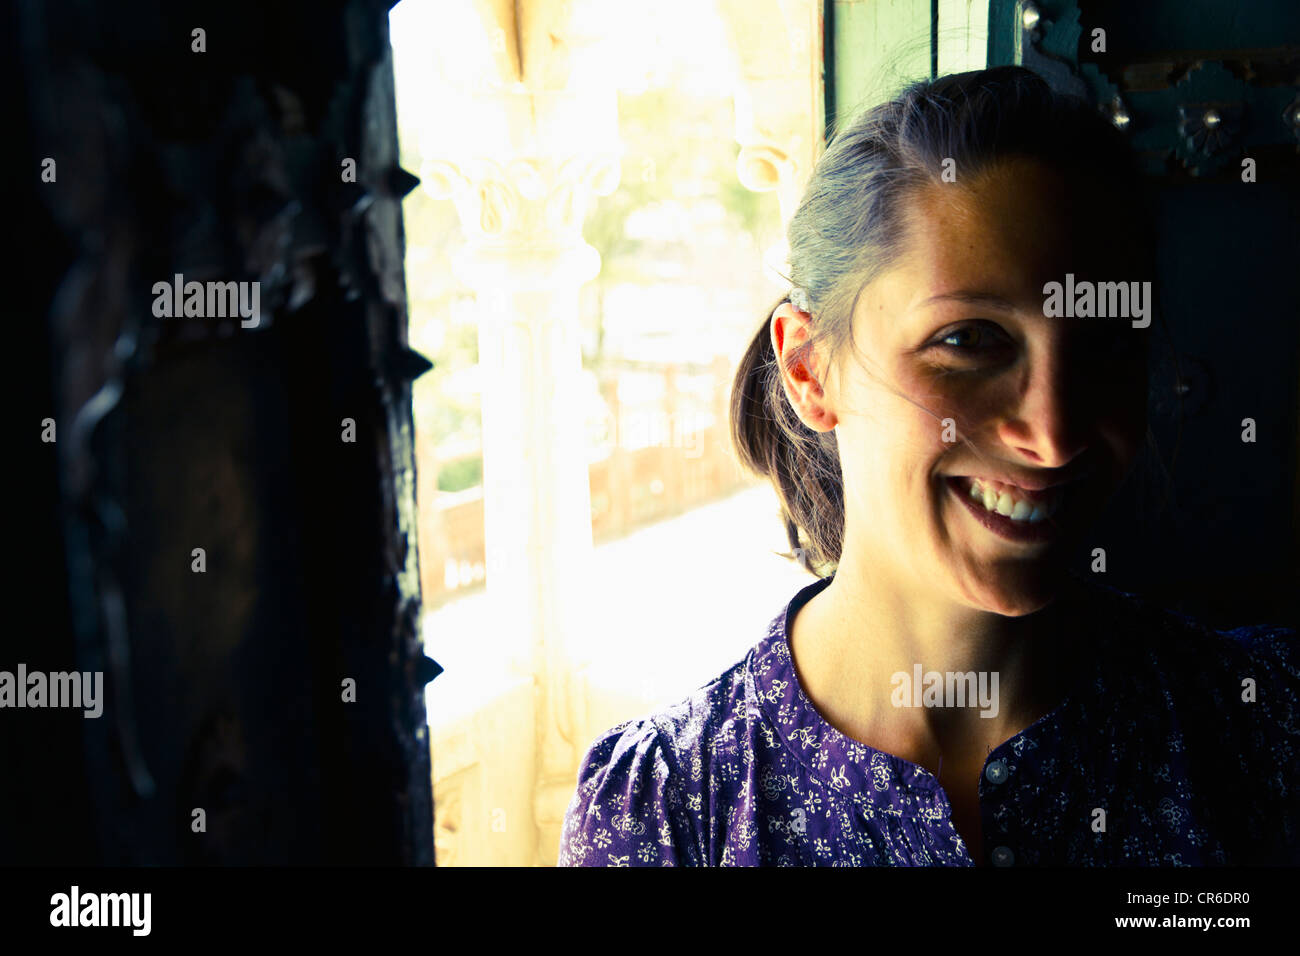 India, Rajasthan, Jodhpur, Young woman standing by old window in Jodhpur Fort, smiling - Stock Image